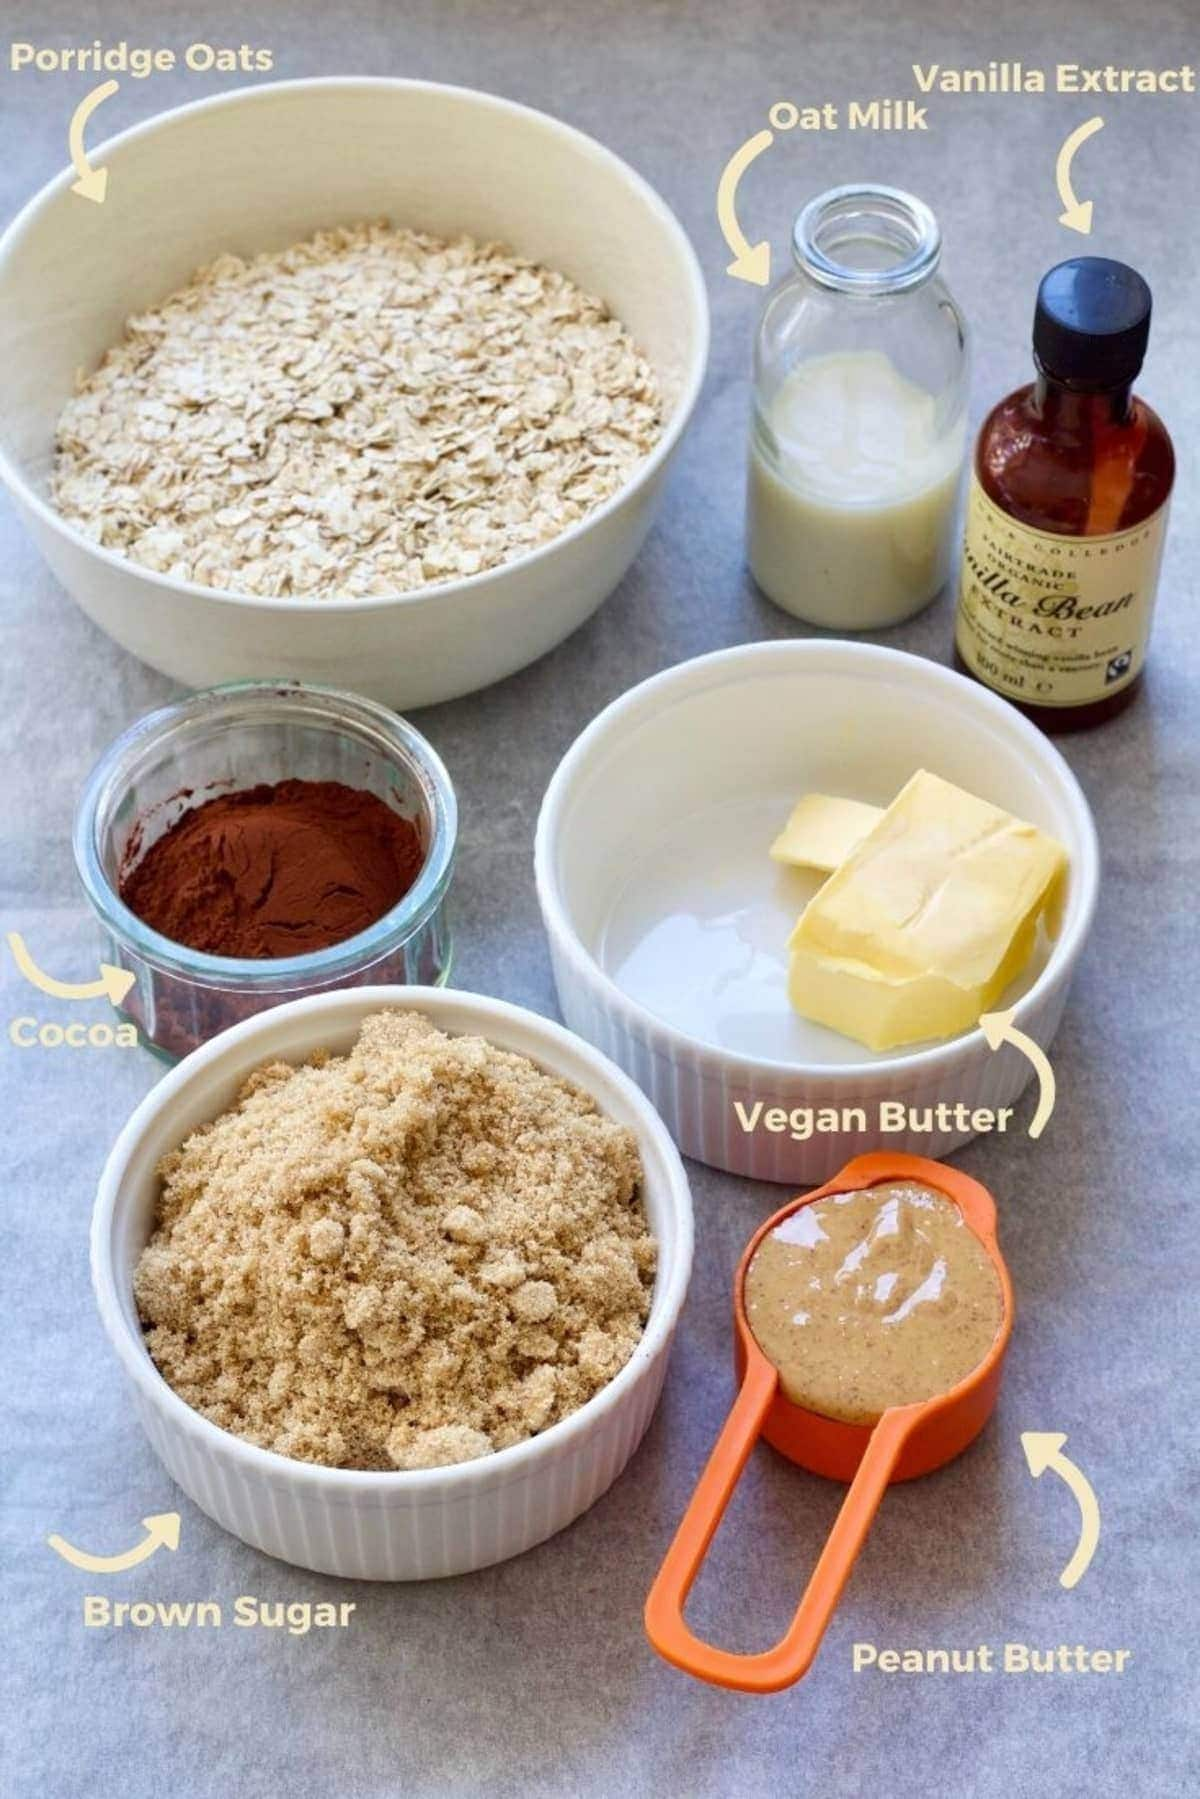 Ingredients for making chocolate oatmeal cookies.